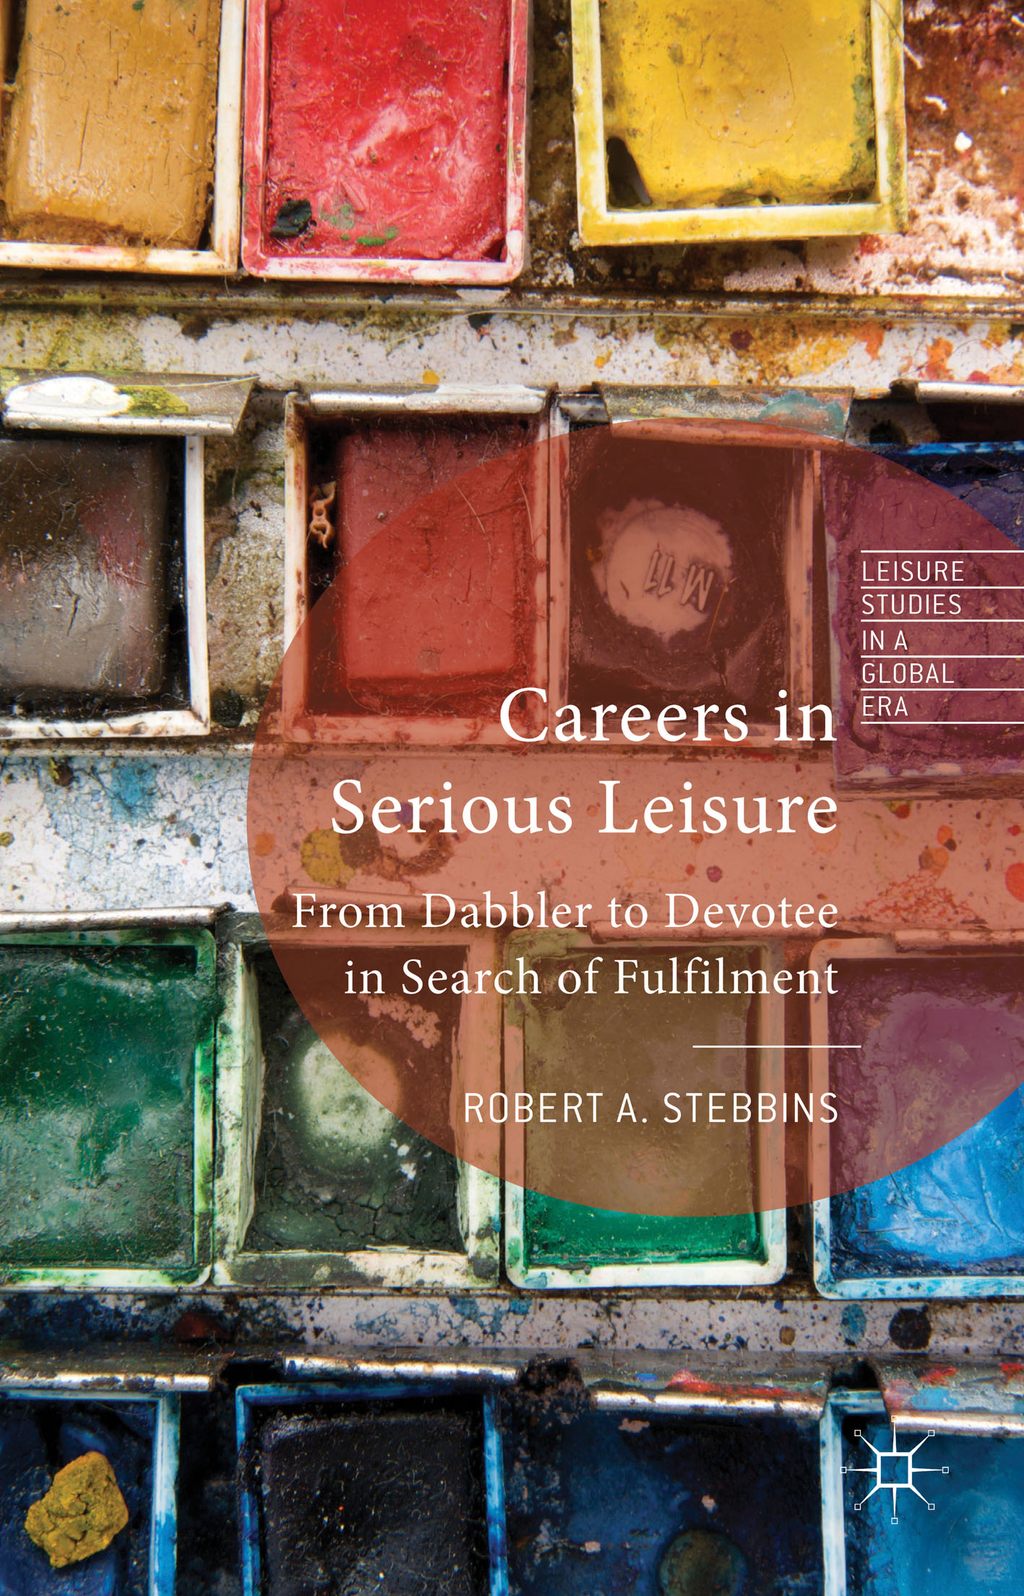 Careers in Serious Leisure From Dabbler to Devotee in Search of Fulfilment